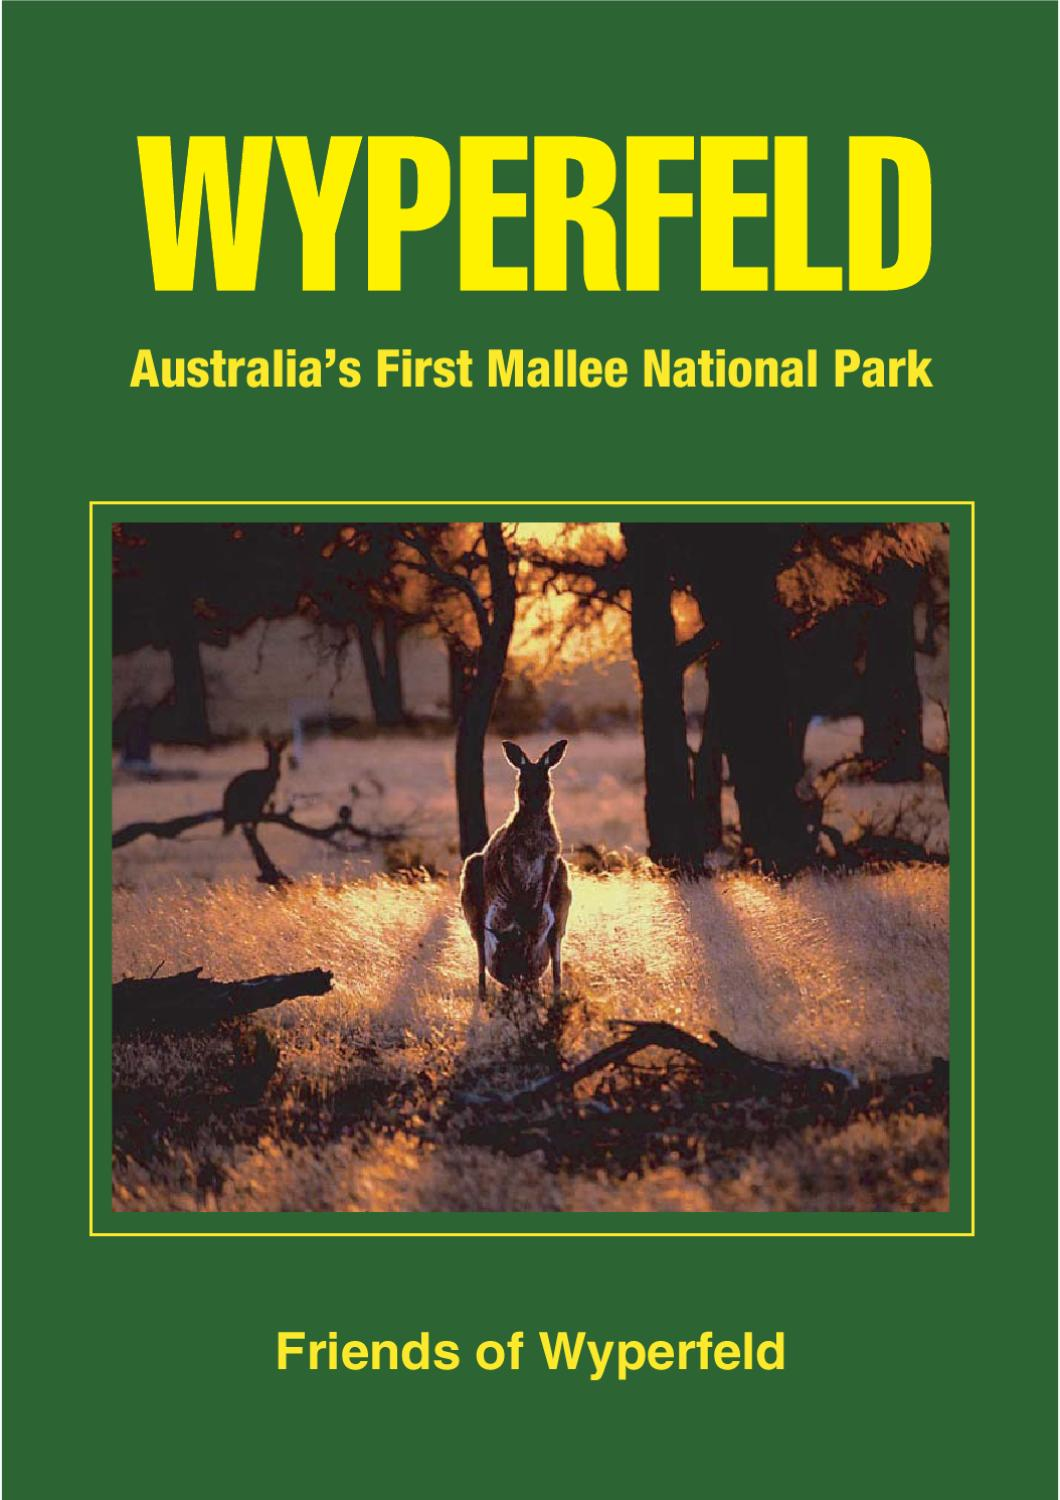 Wyperfeld-Australia's First Mallee National Park by